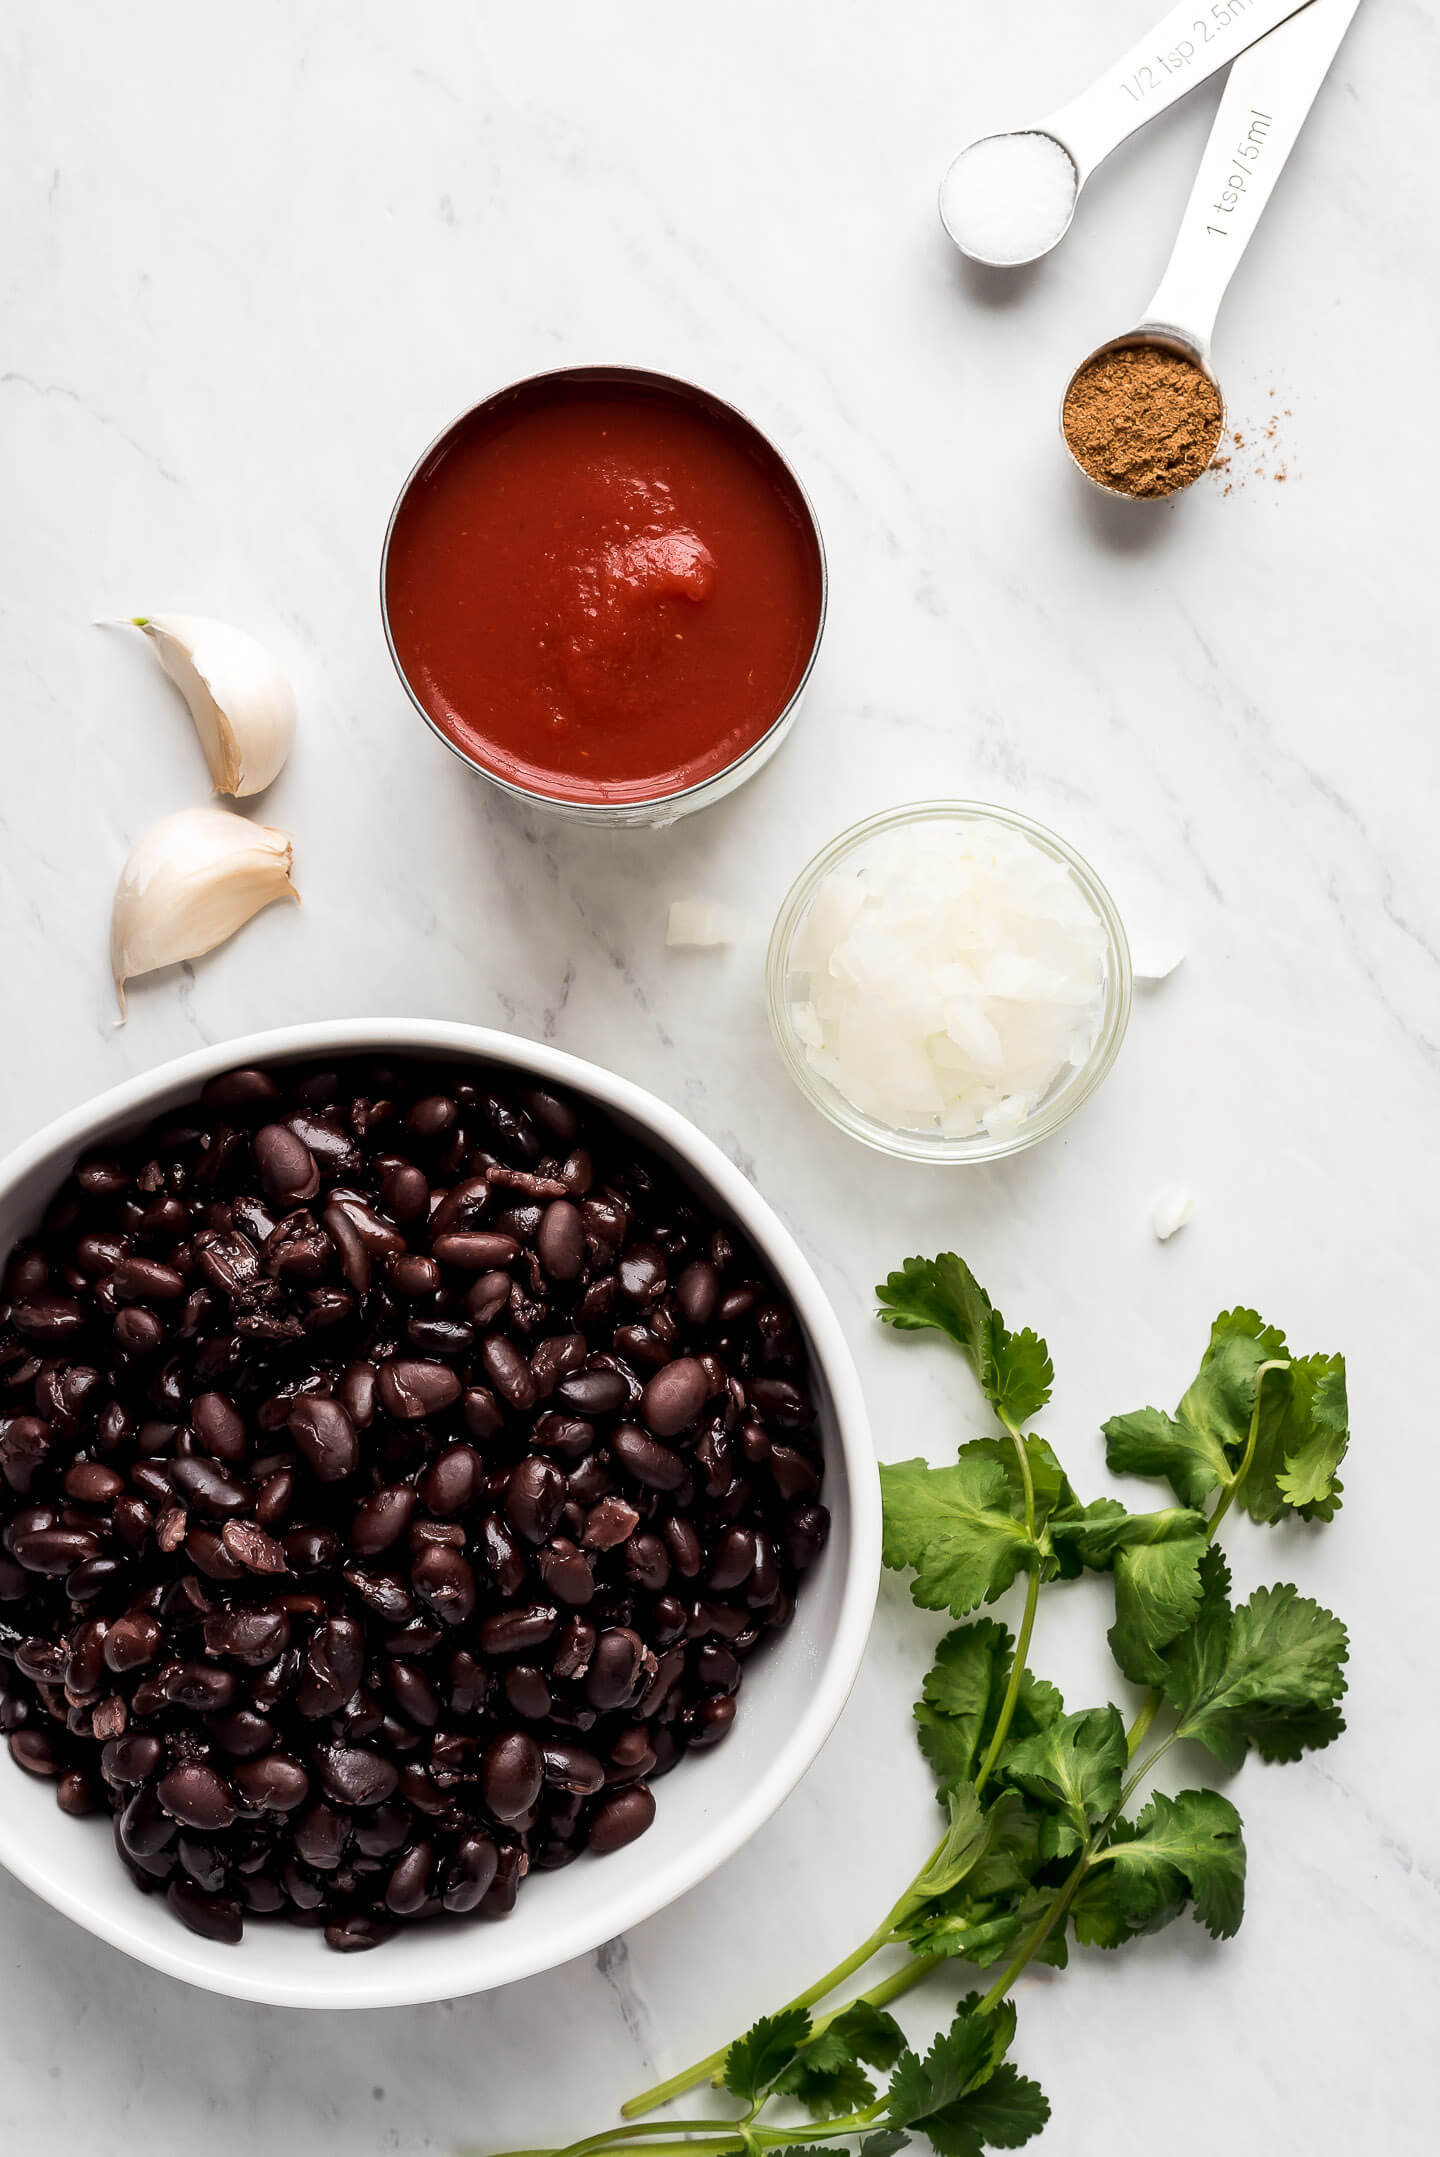 A large bowl of beans, a can of tomato sauce, a small bowl of chopped onions, cloves of garlic, fresh cilantro, and measuring spoons of spices laying on a marble surface.